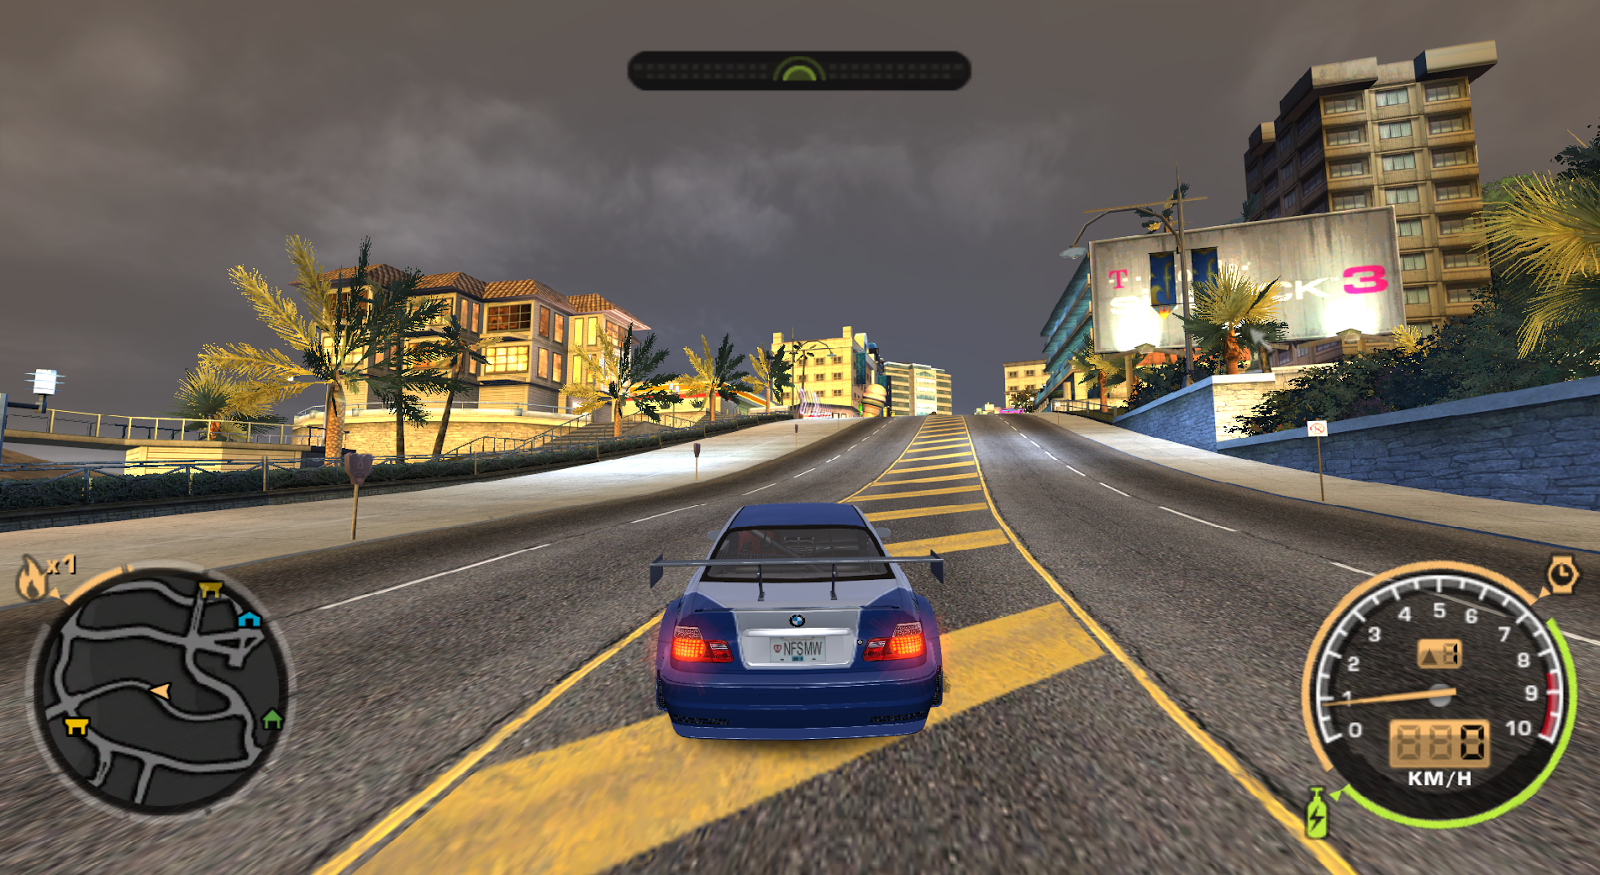 Nfs Toolkit 5 Map Conversion From Carbon To Most Wanted